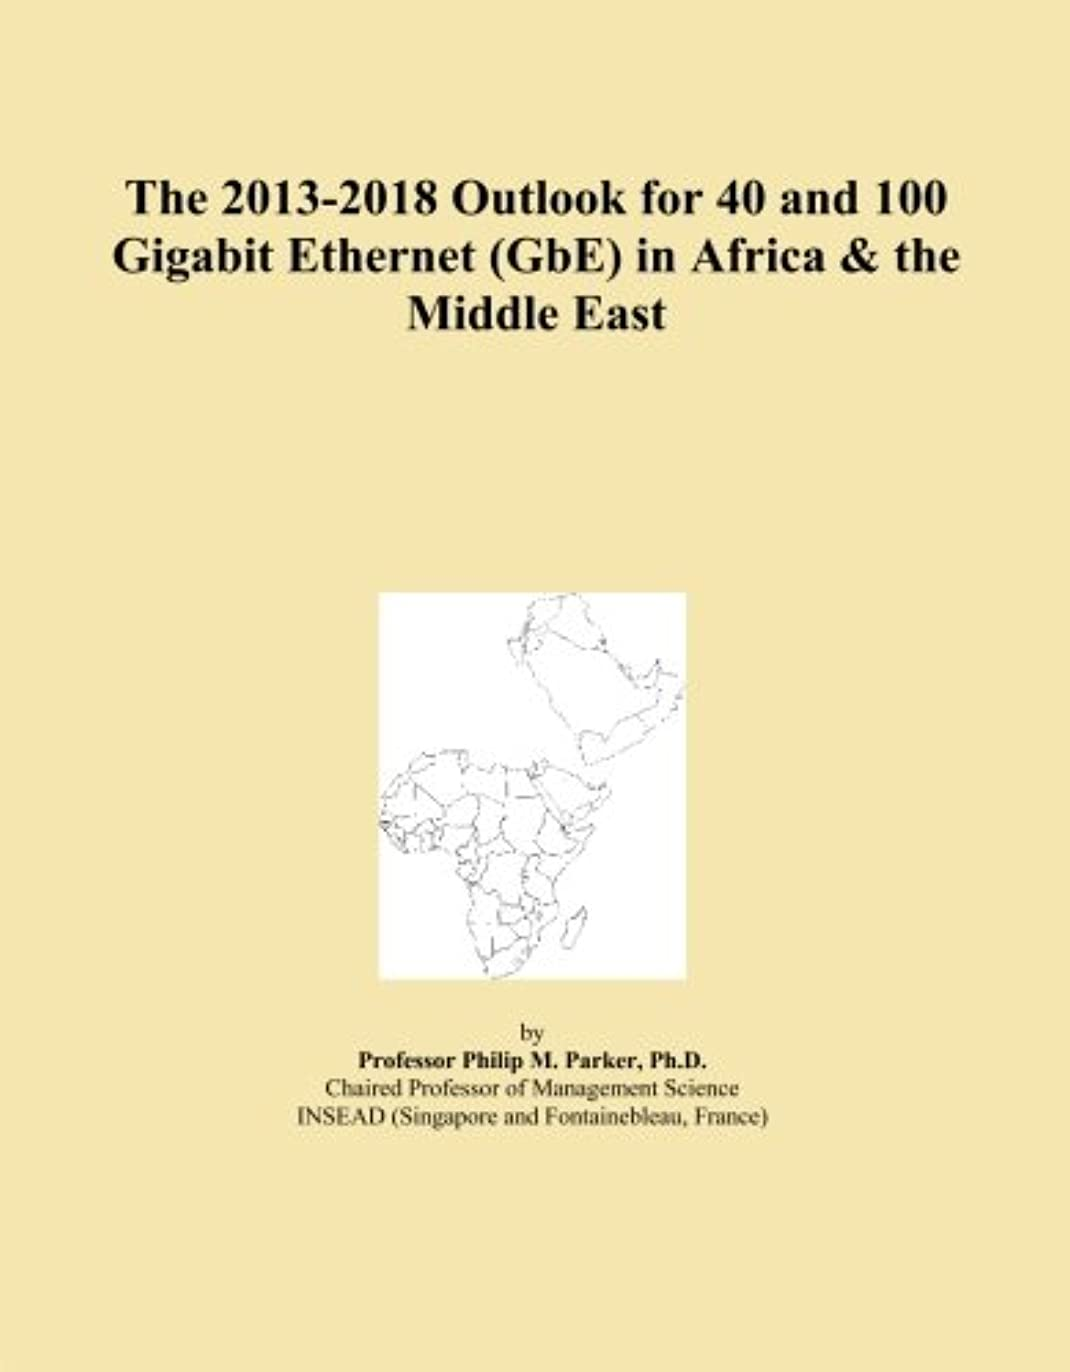 The 2013-2018 Outlook for 40 and 100 Gigabit Ethernet (GbE) in Africa & the Middle East